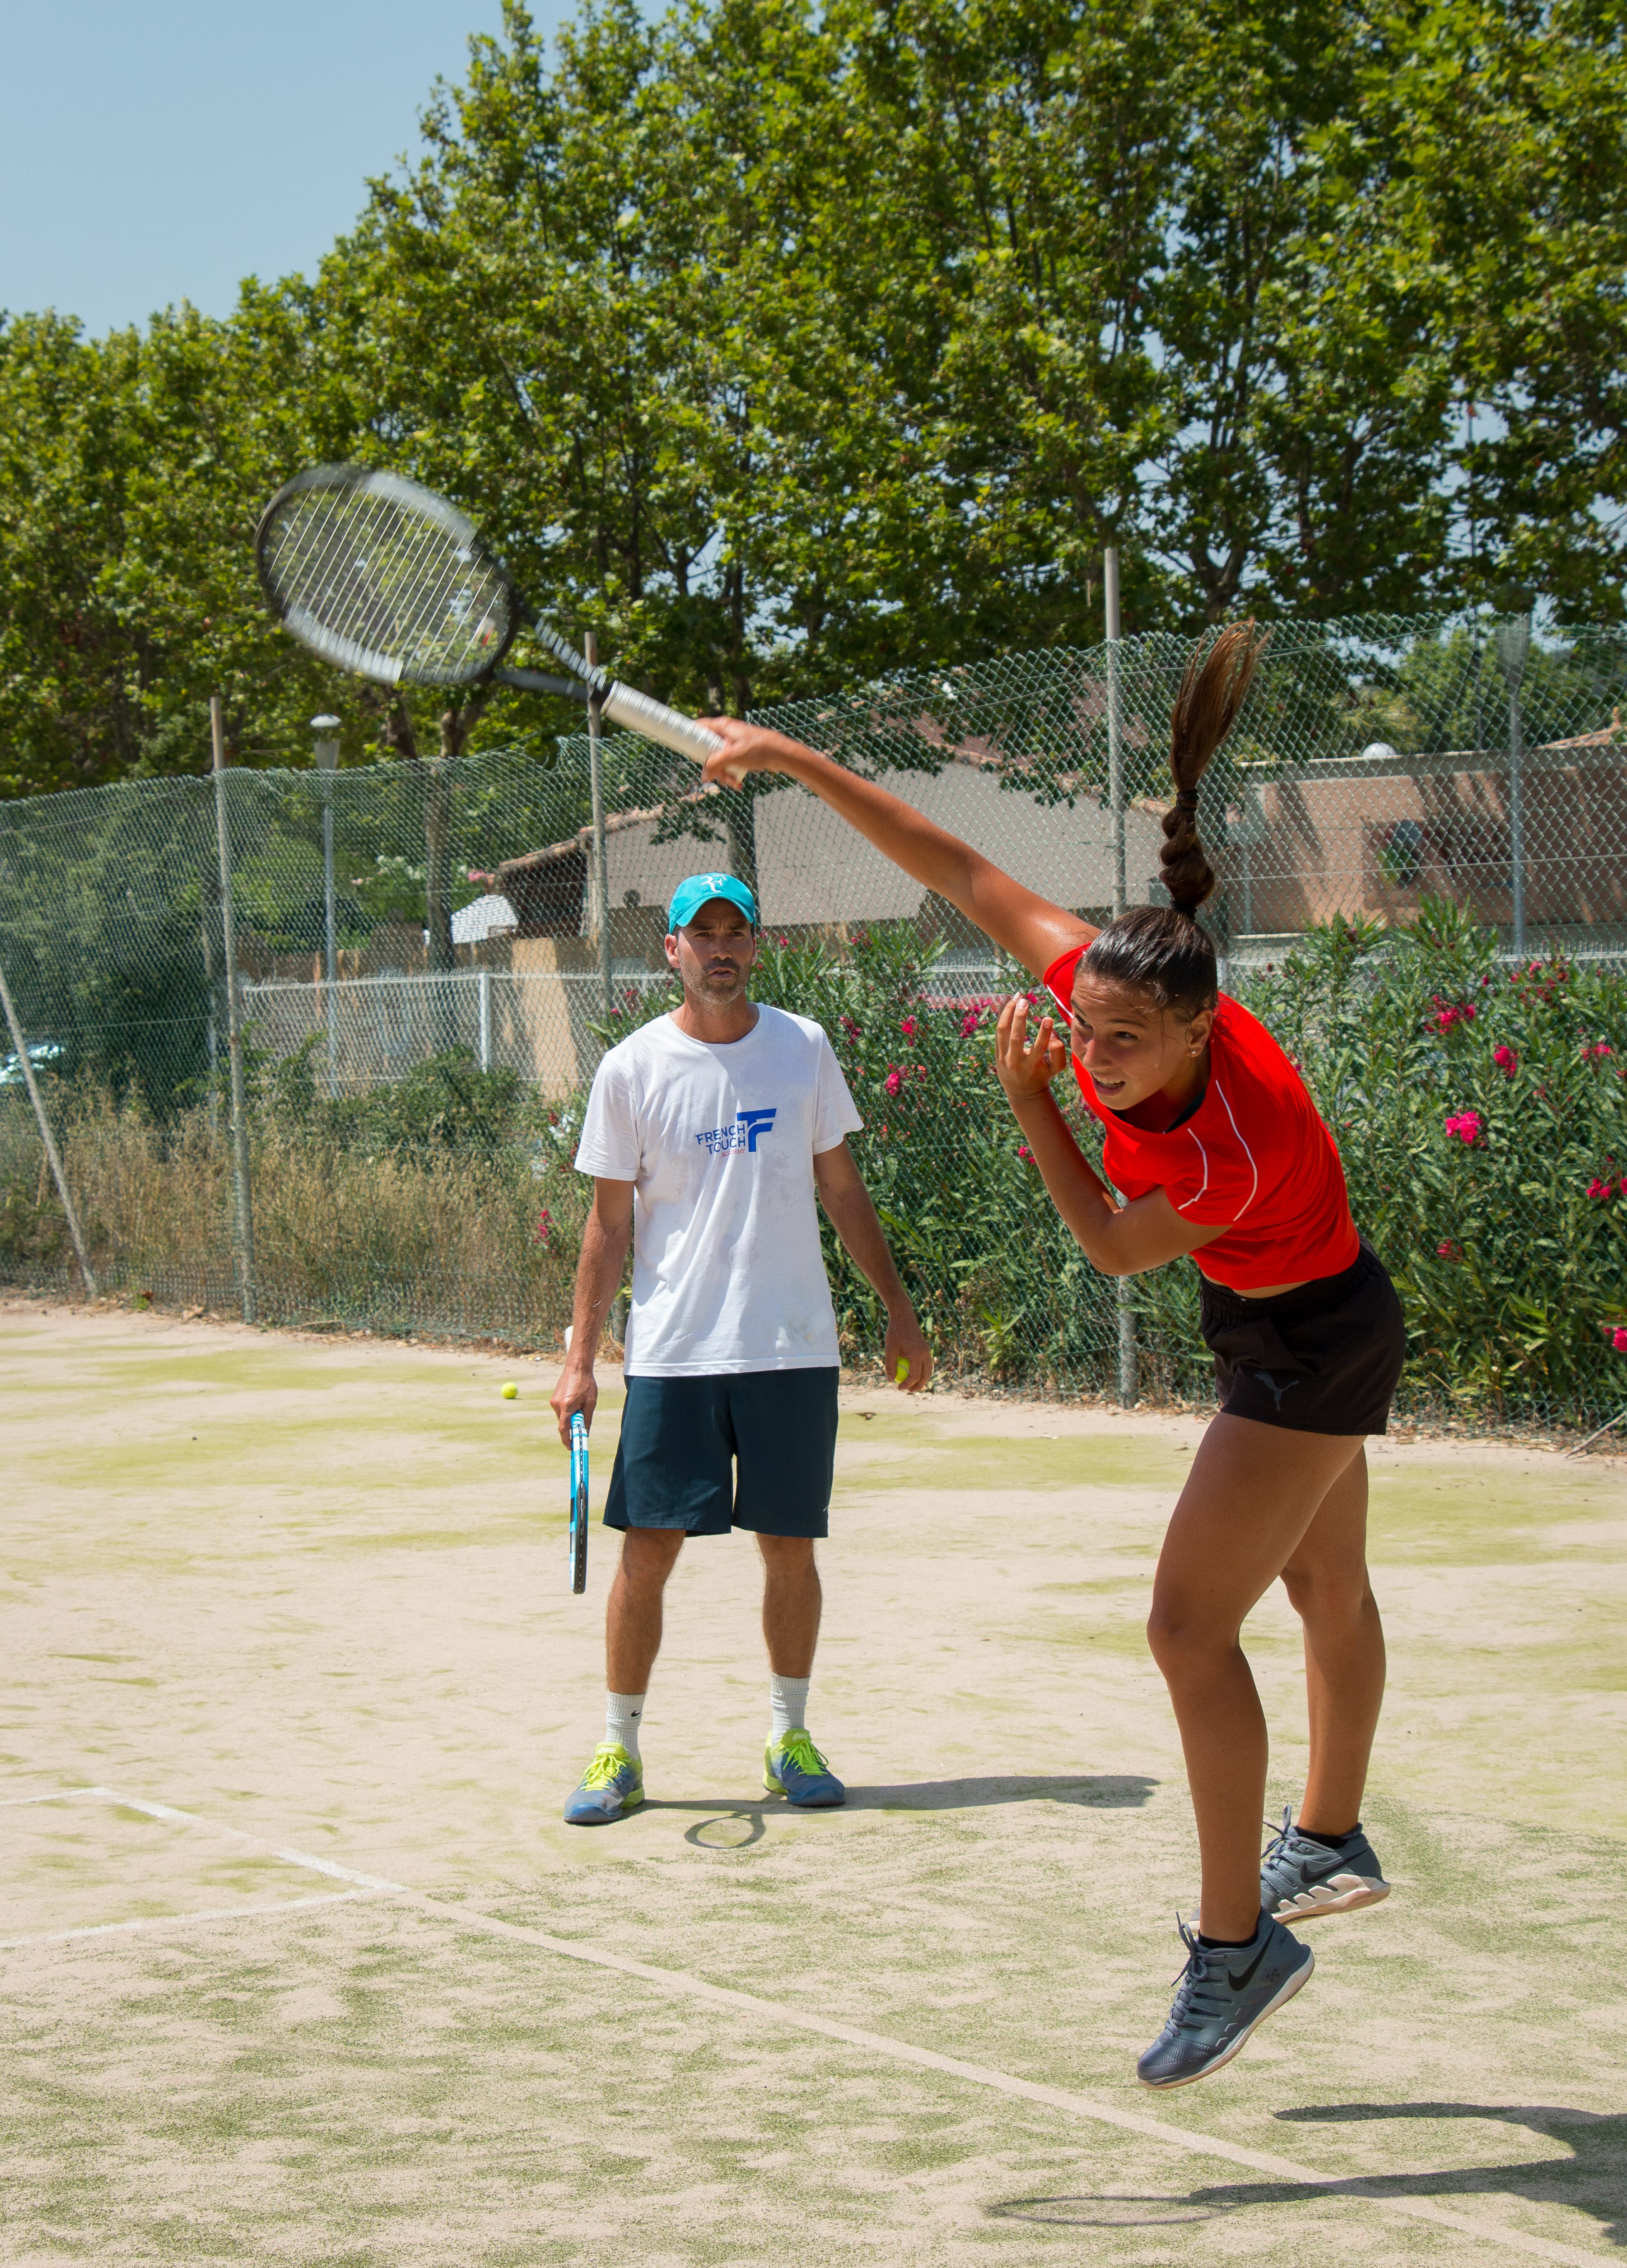 Tennis player with her coach on the court